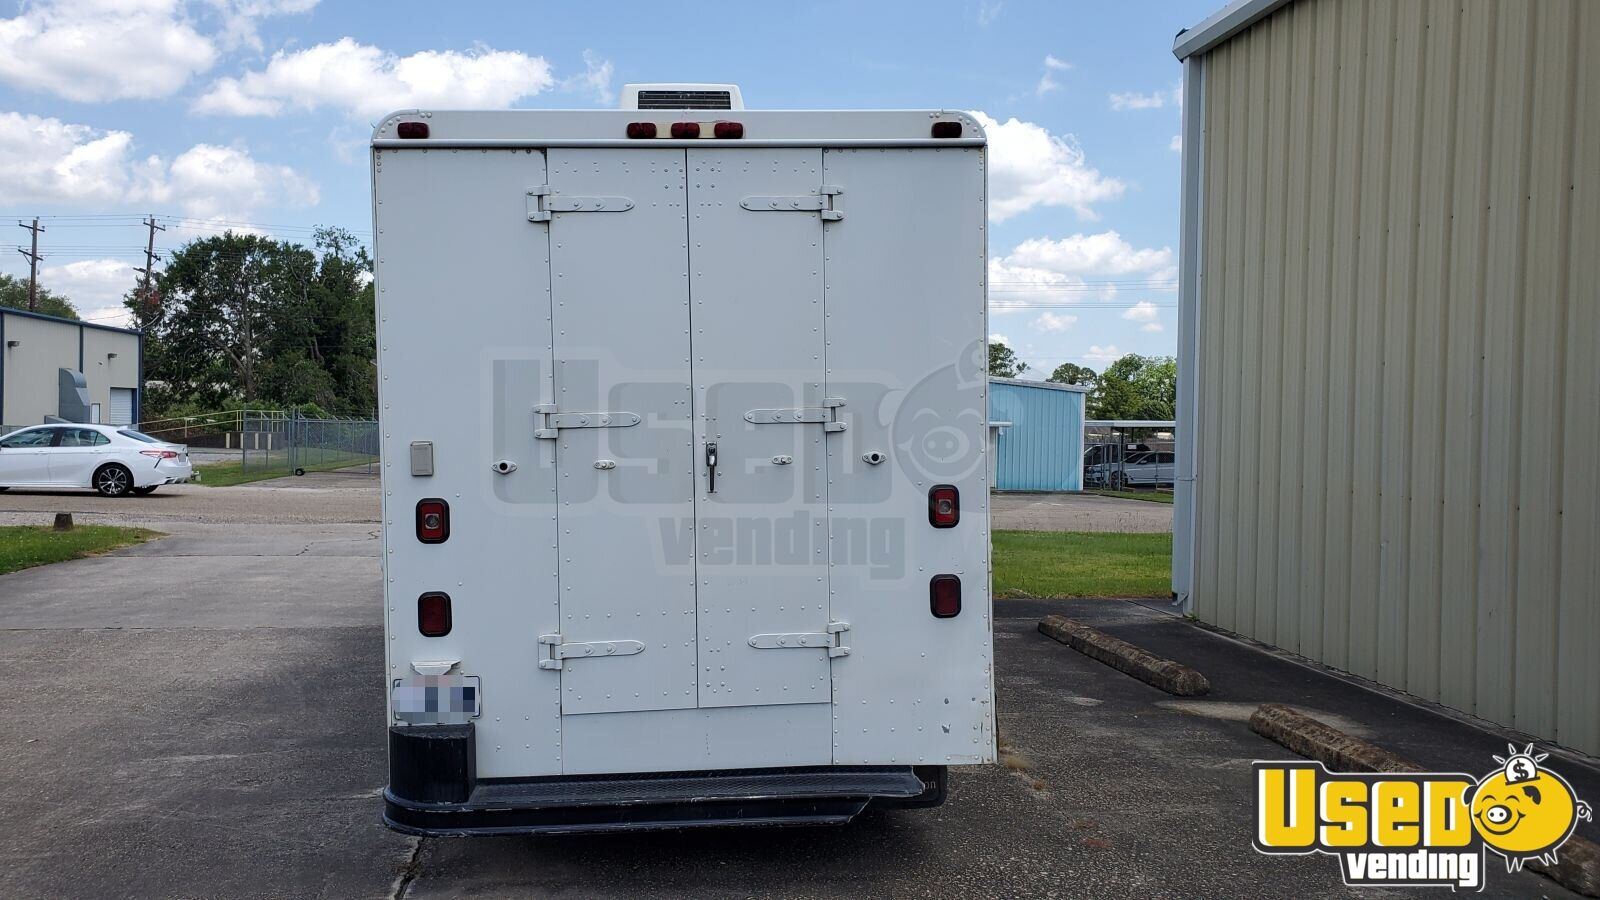 1995 P-30 Step Van Stepvan Insulated Walls Louisiana Gas Engine for Sale - 4